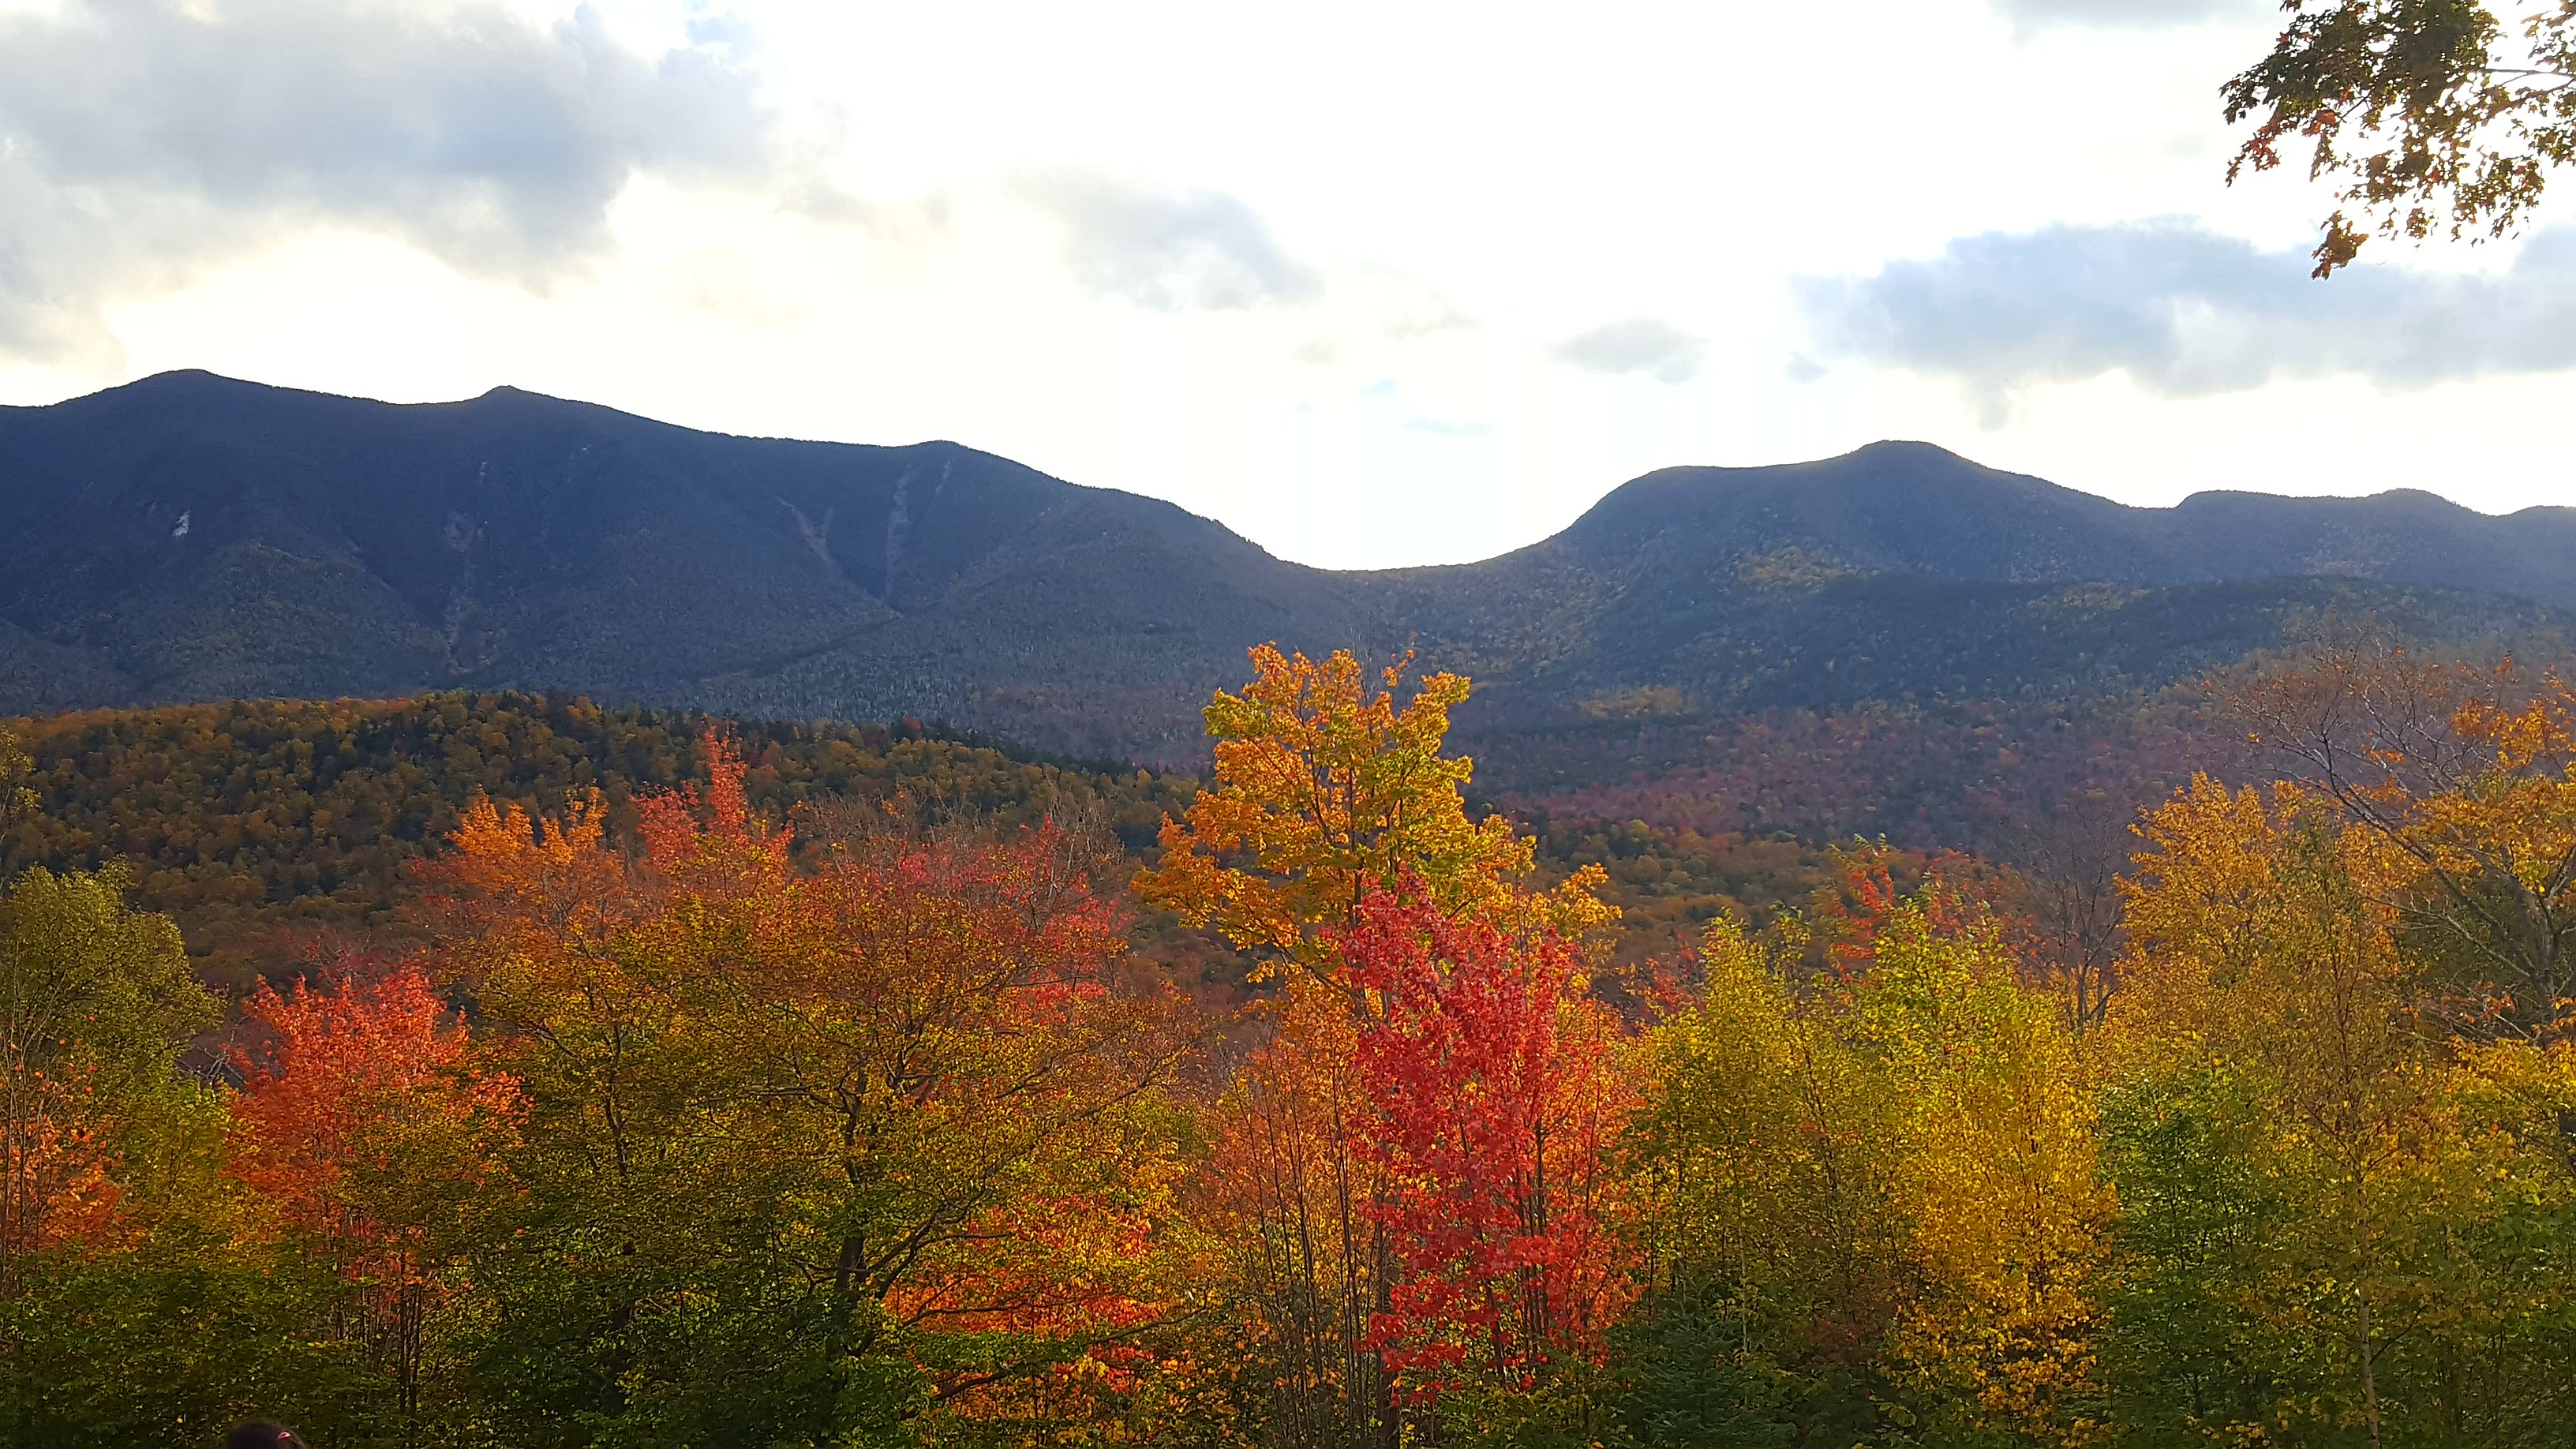 Kancamagus Scenic Byway view in fall